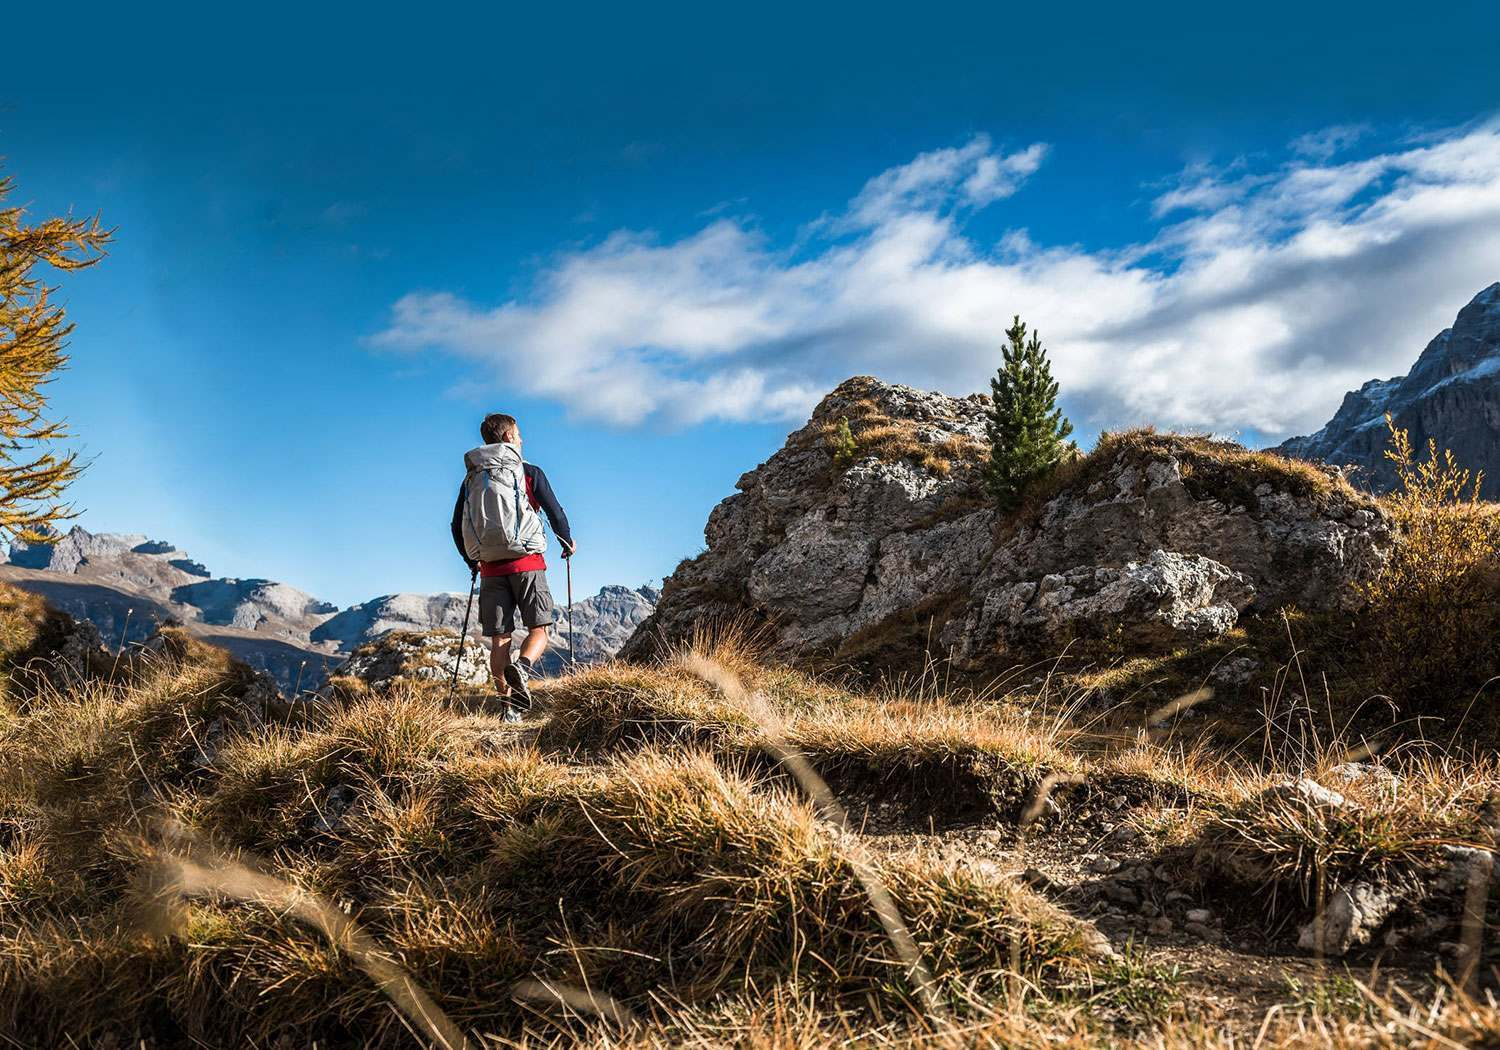 Justifying Blisters: Why do Hikers Hike?